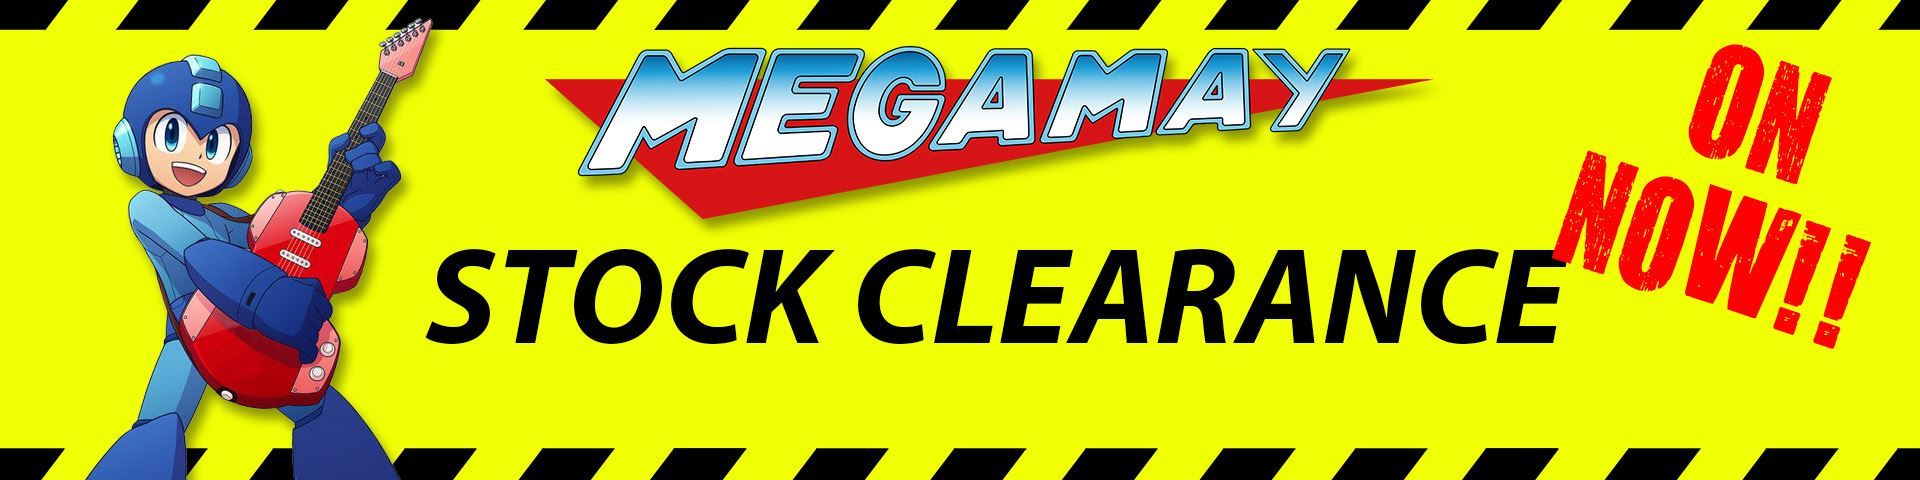 Mega May Stock Clearance On Now